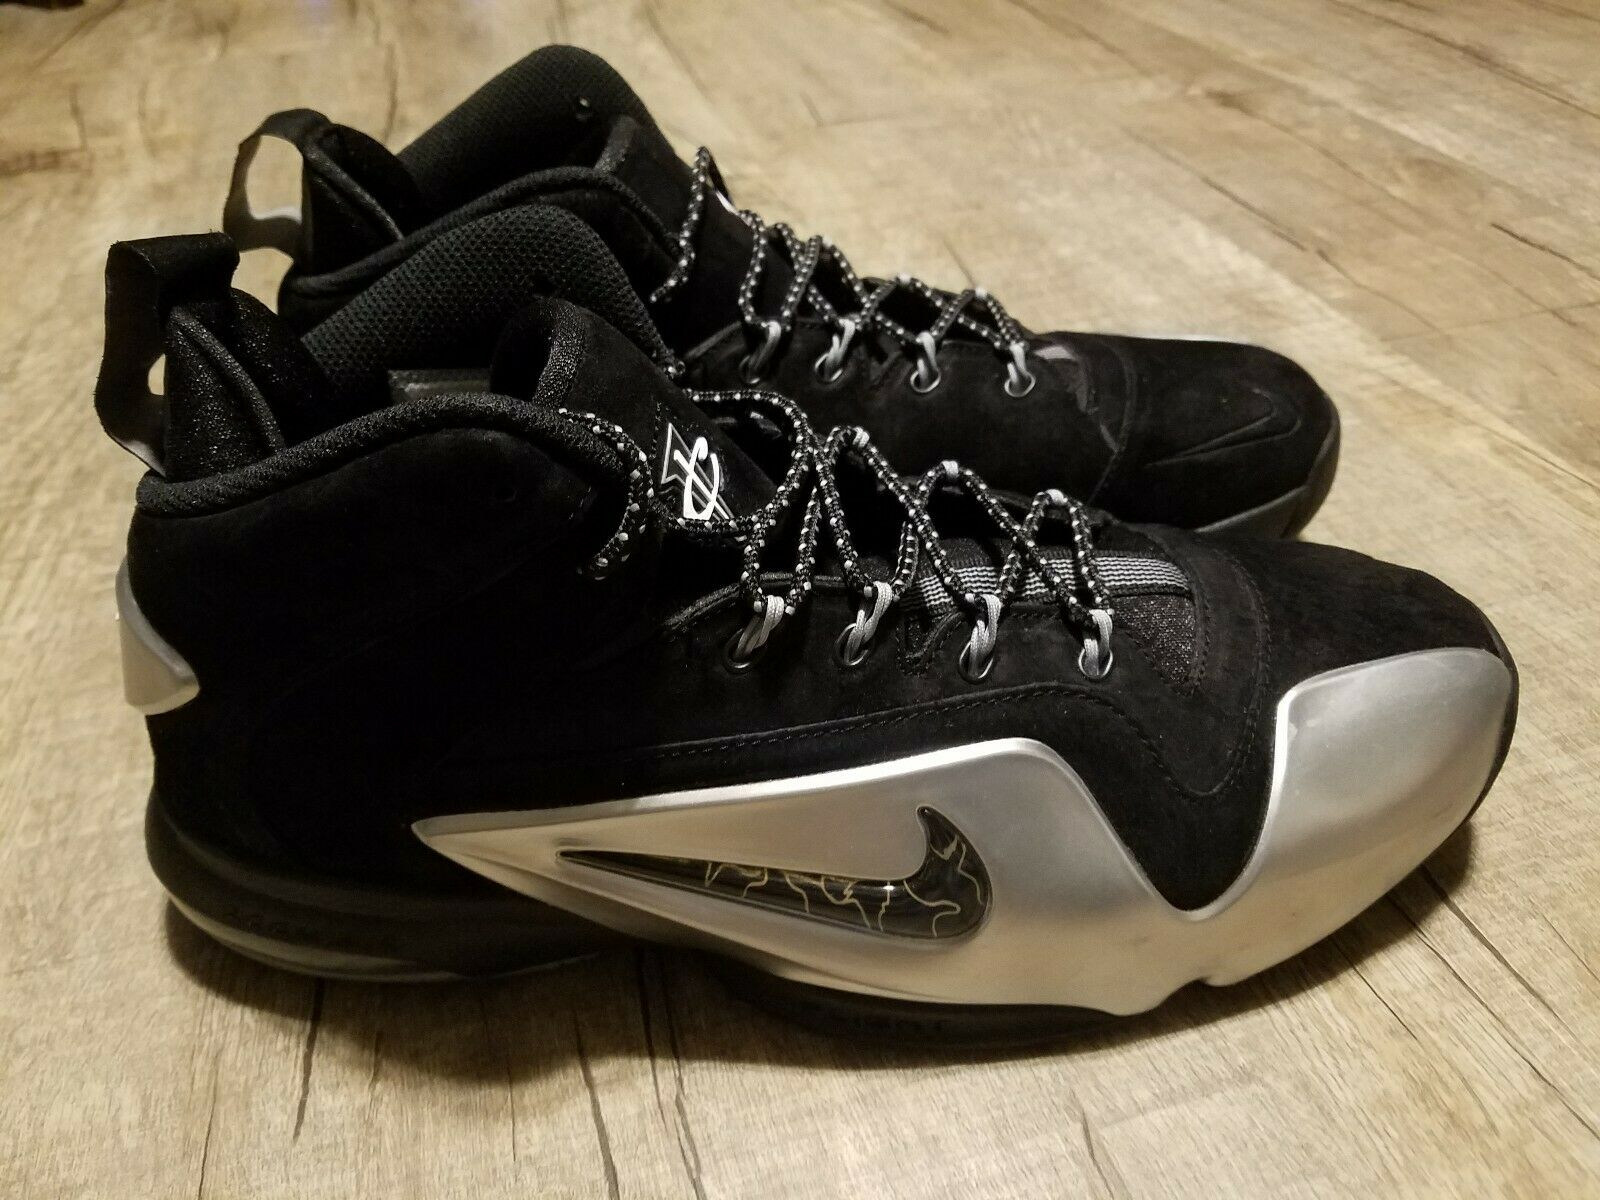 newest c6437 d7a37 Nike Zoom Penny VI 749629-002 Men Size 11